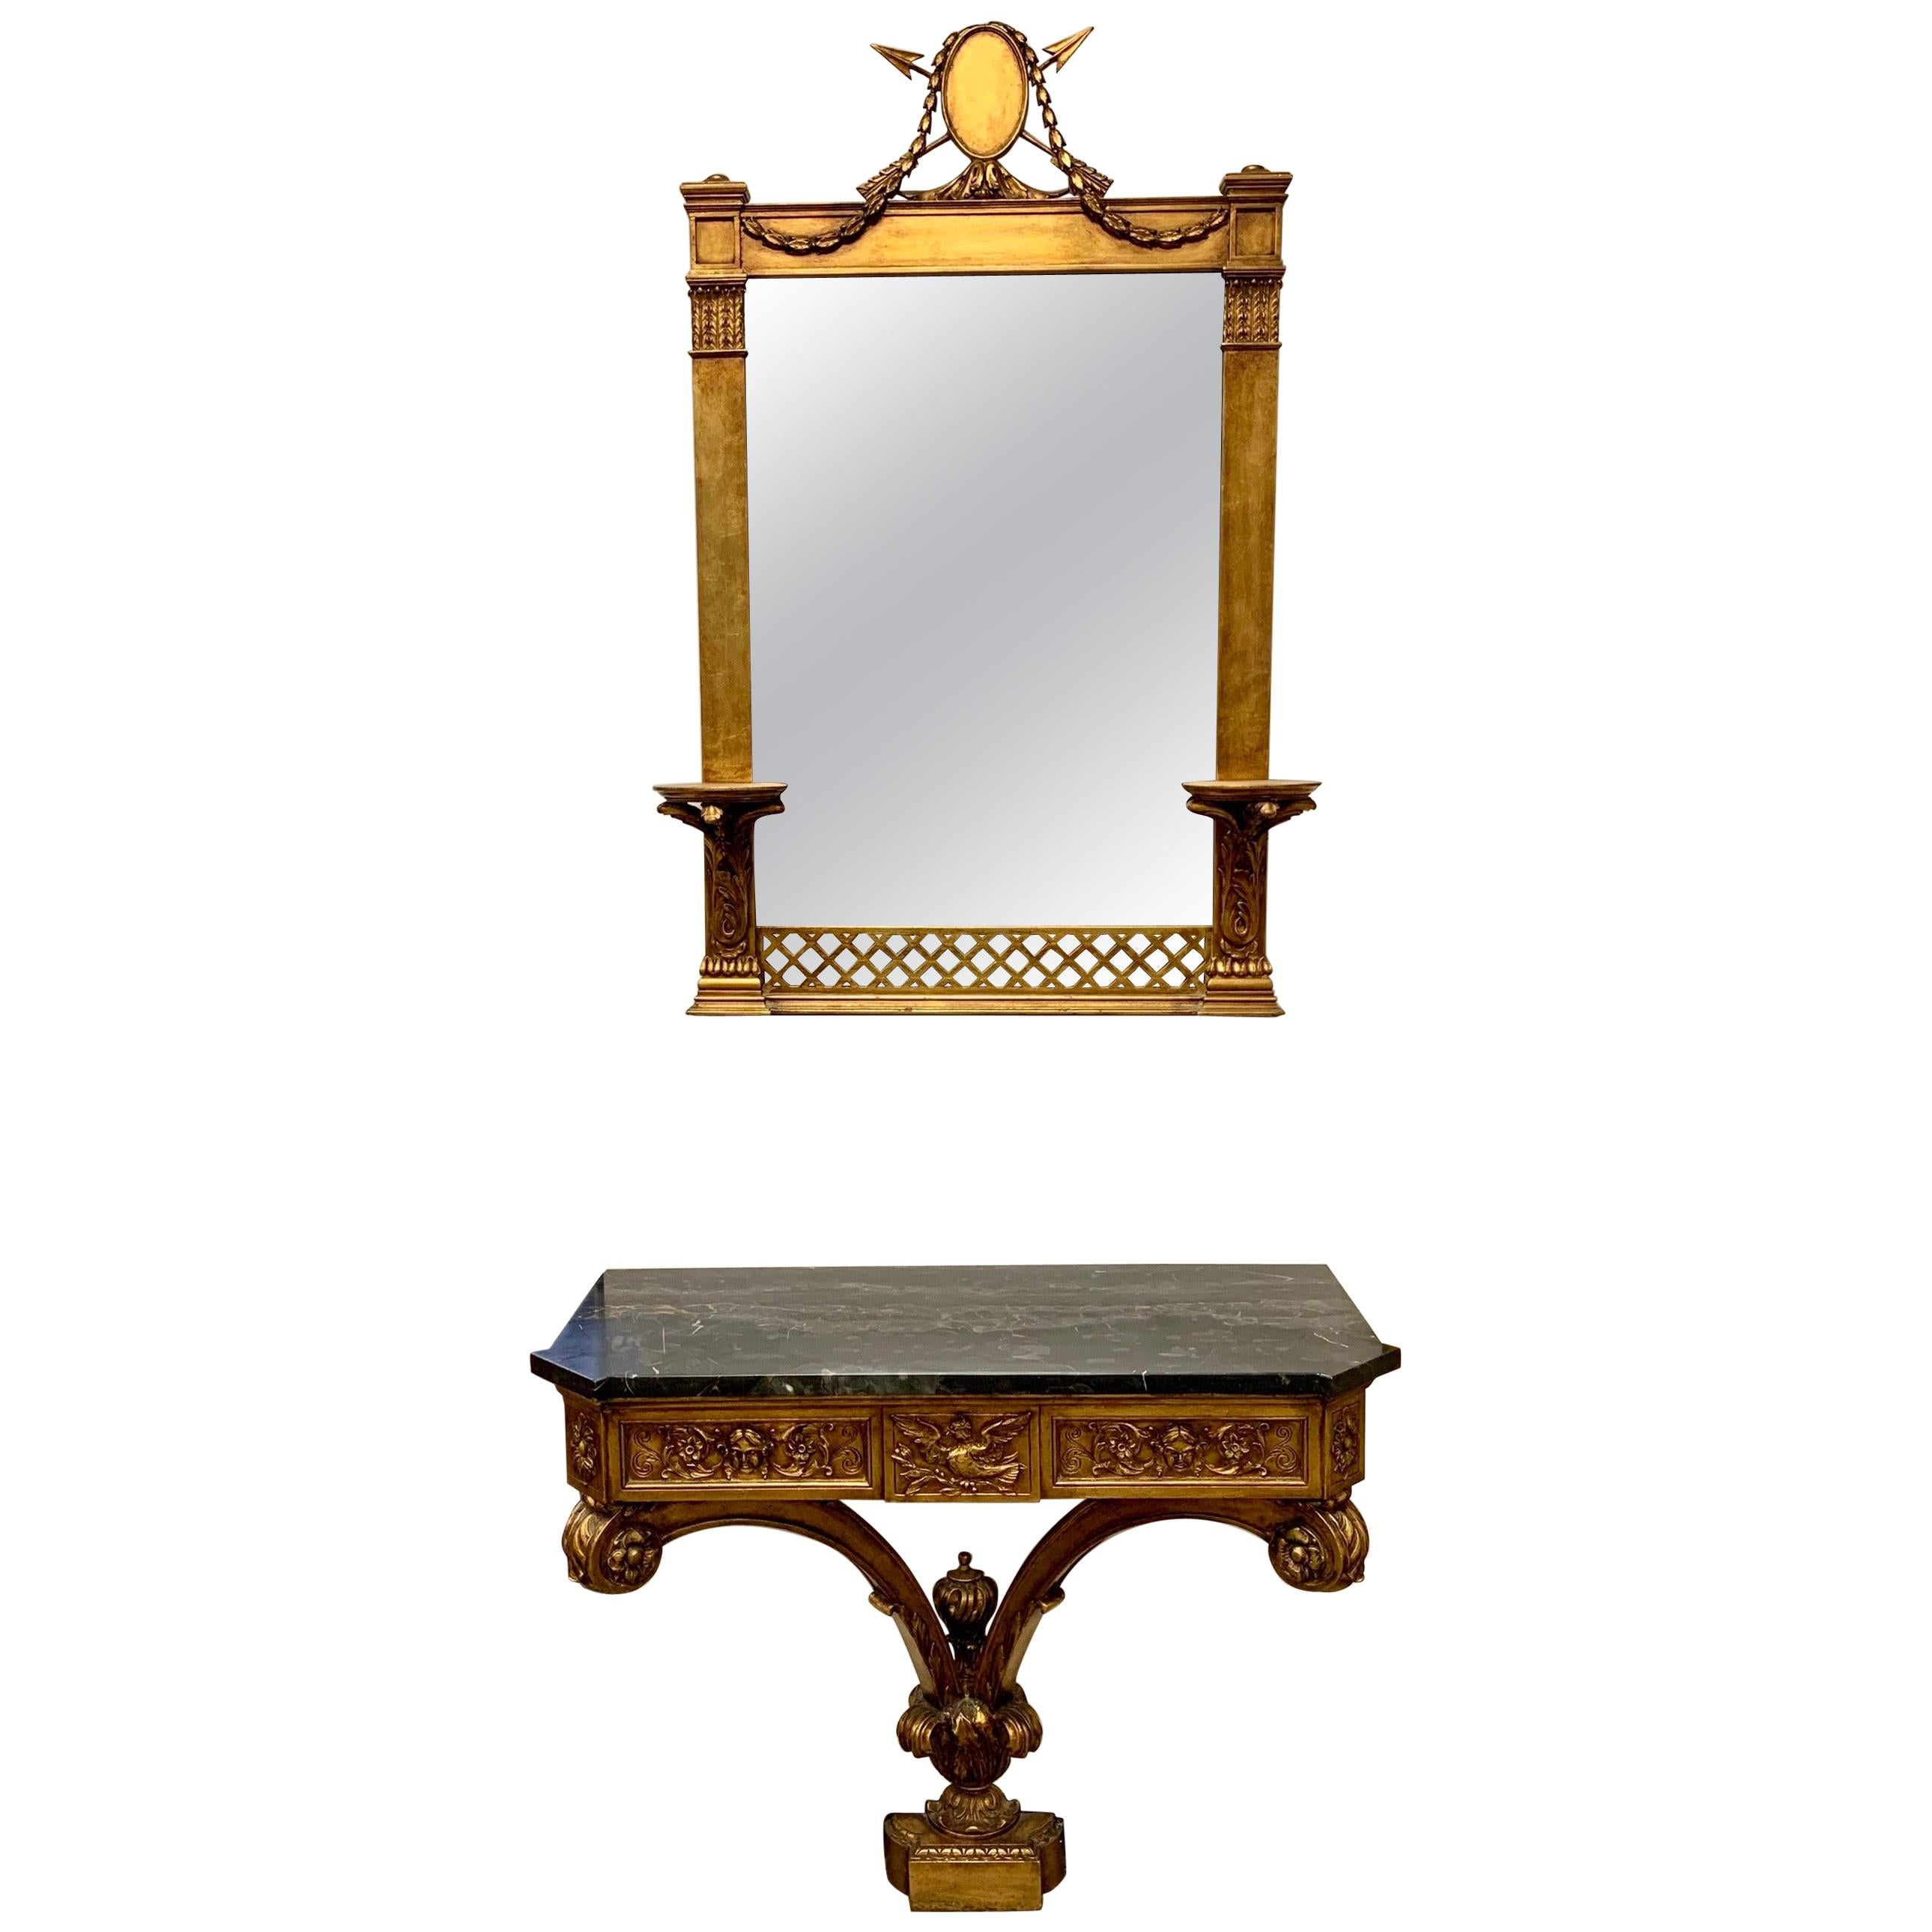 Antique Two Piece Italian Carved Giltwood Mirror and Marble Top Console Demilune